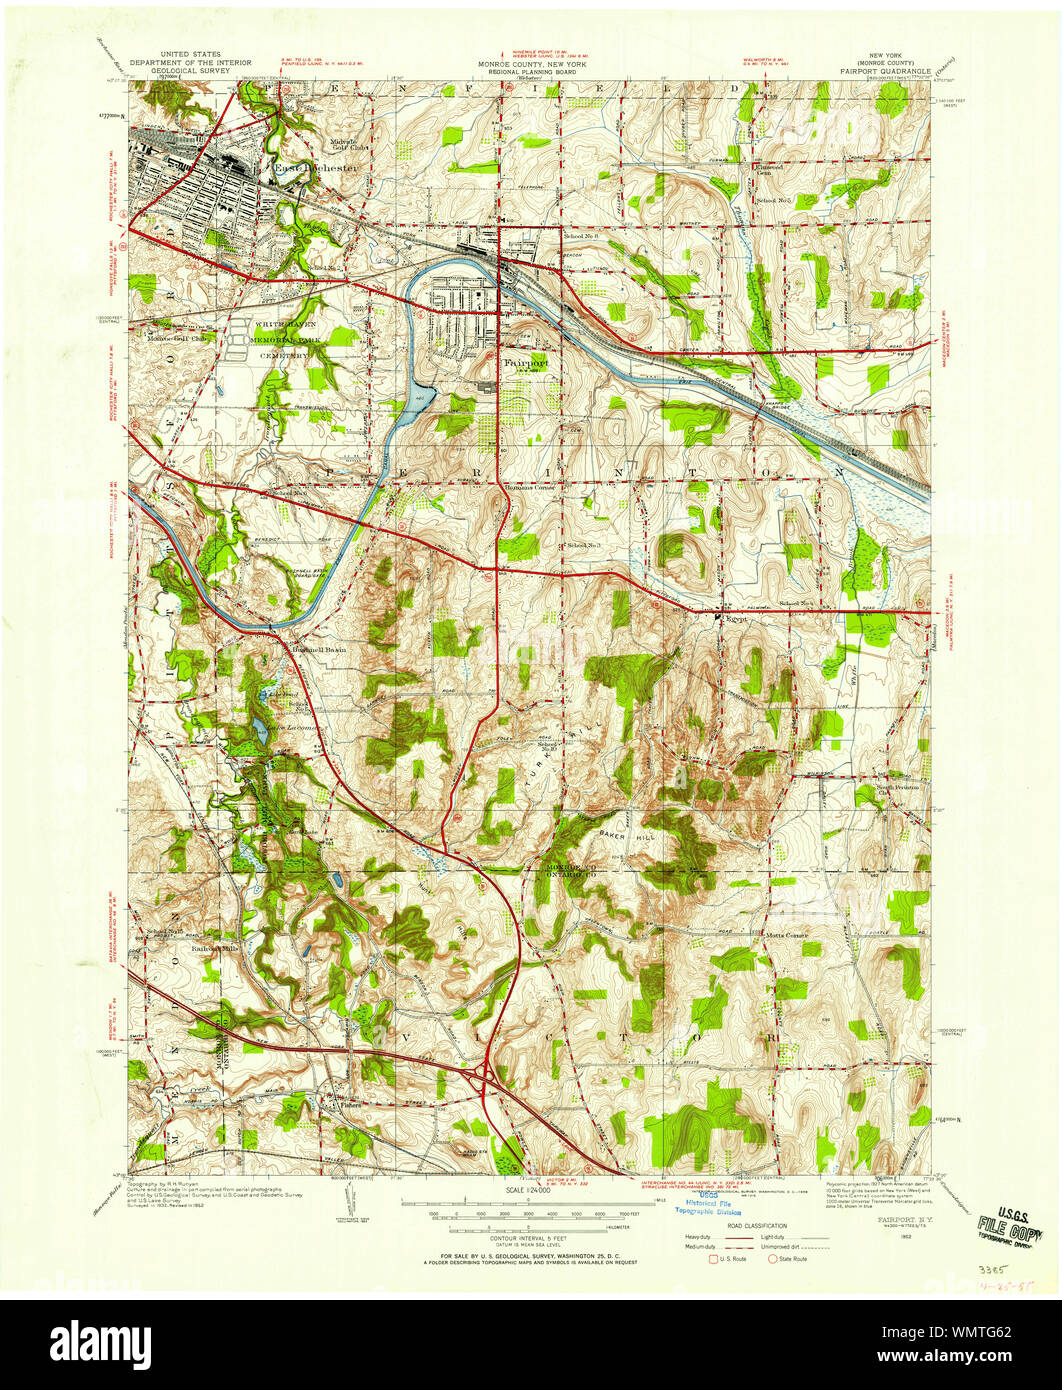 """22/"""" X 27/"""" New York State Quadrangle Topographical Map of Pittsford 1971 M-18"""